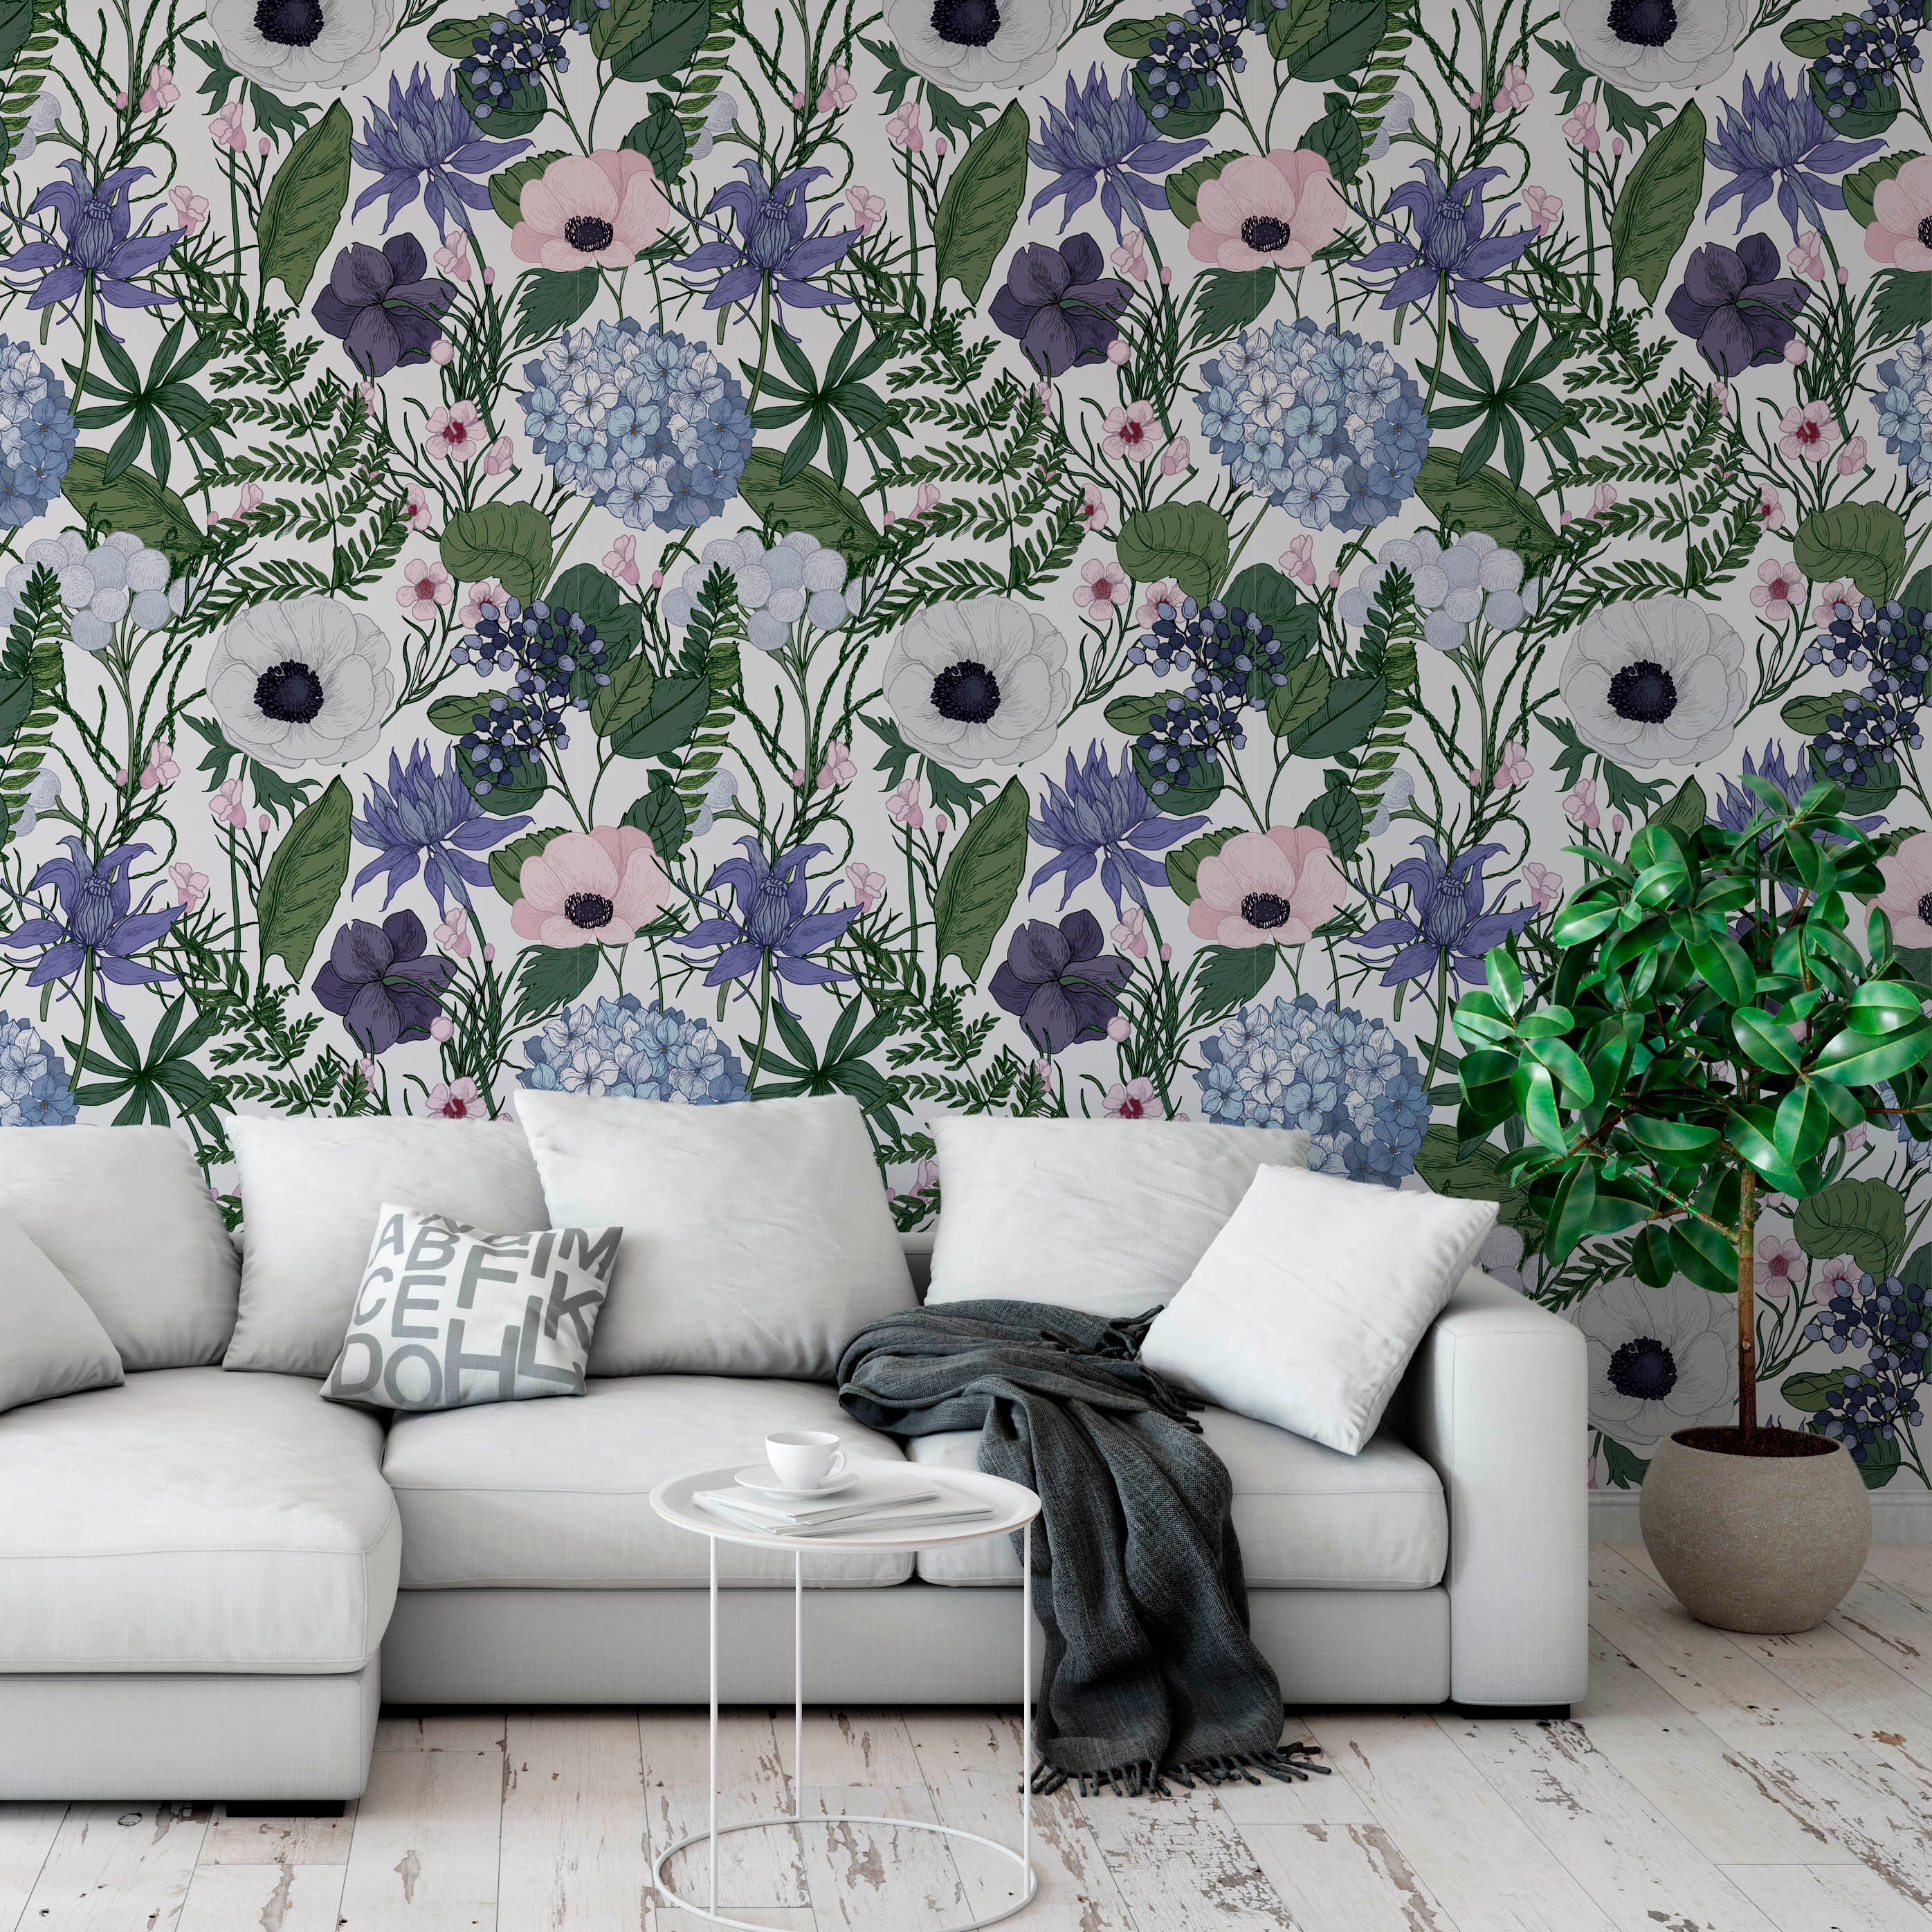 Flower Forest Removable Wallpaper Self Adhesive Peel And Stick Wallpaper A089 For Relaxing X In 2020 Removable Wallpaper Peel And Stick Wallpaper Decor